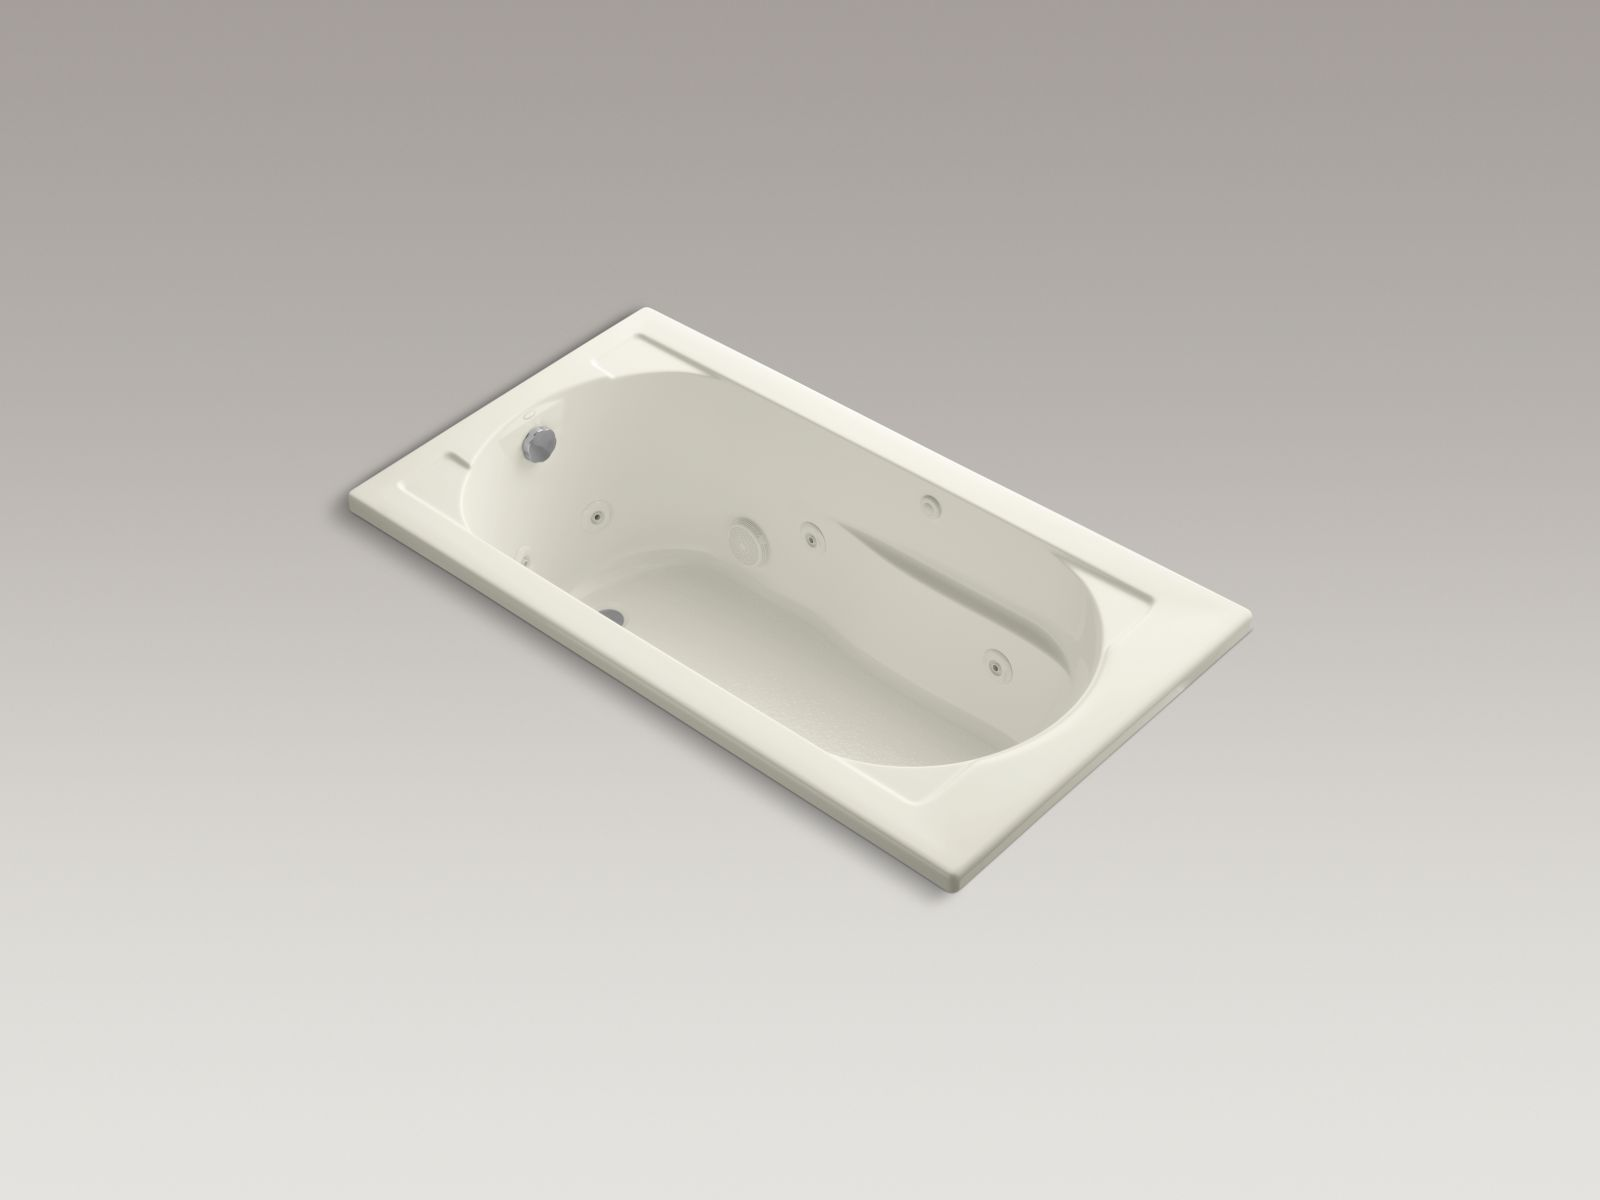 Kohler K-1357-96 Devonshire 5' Whirlpool with Reversible Drain Biscuit